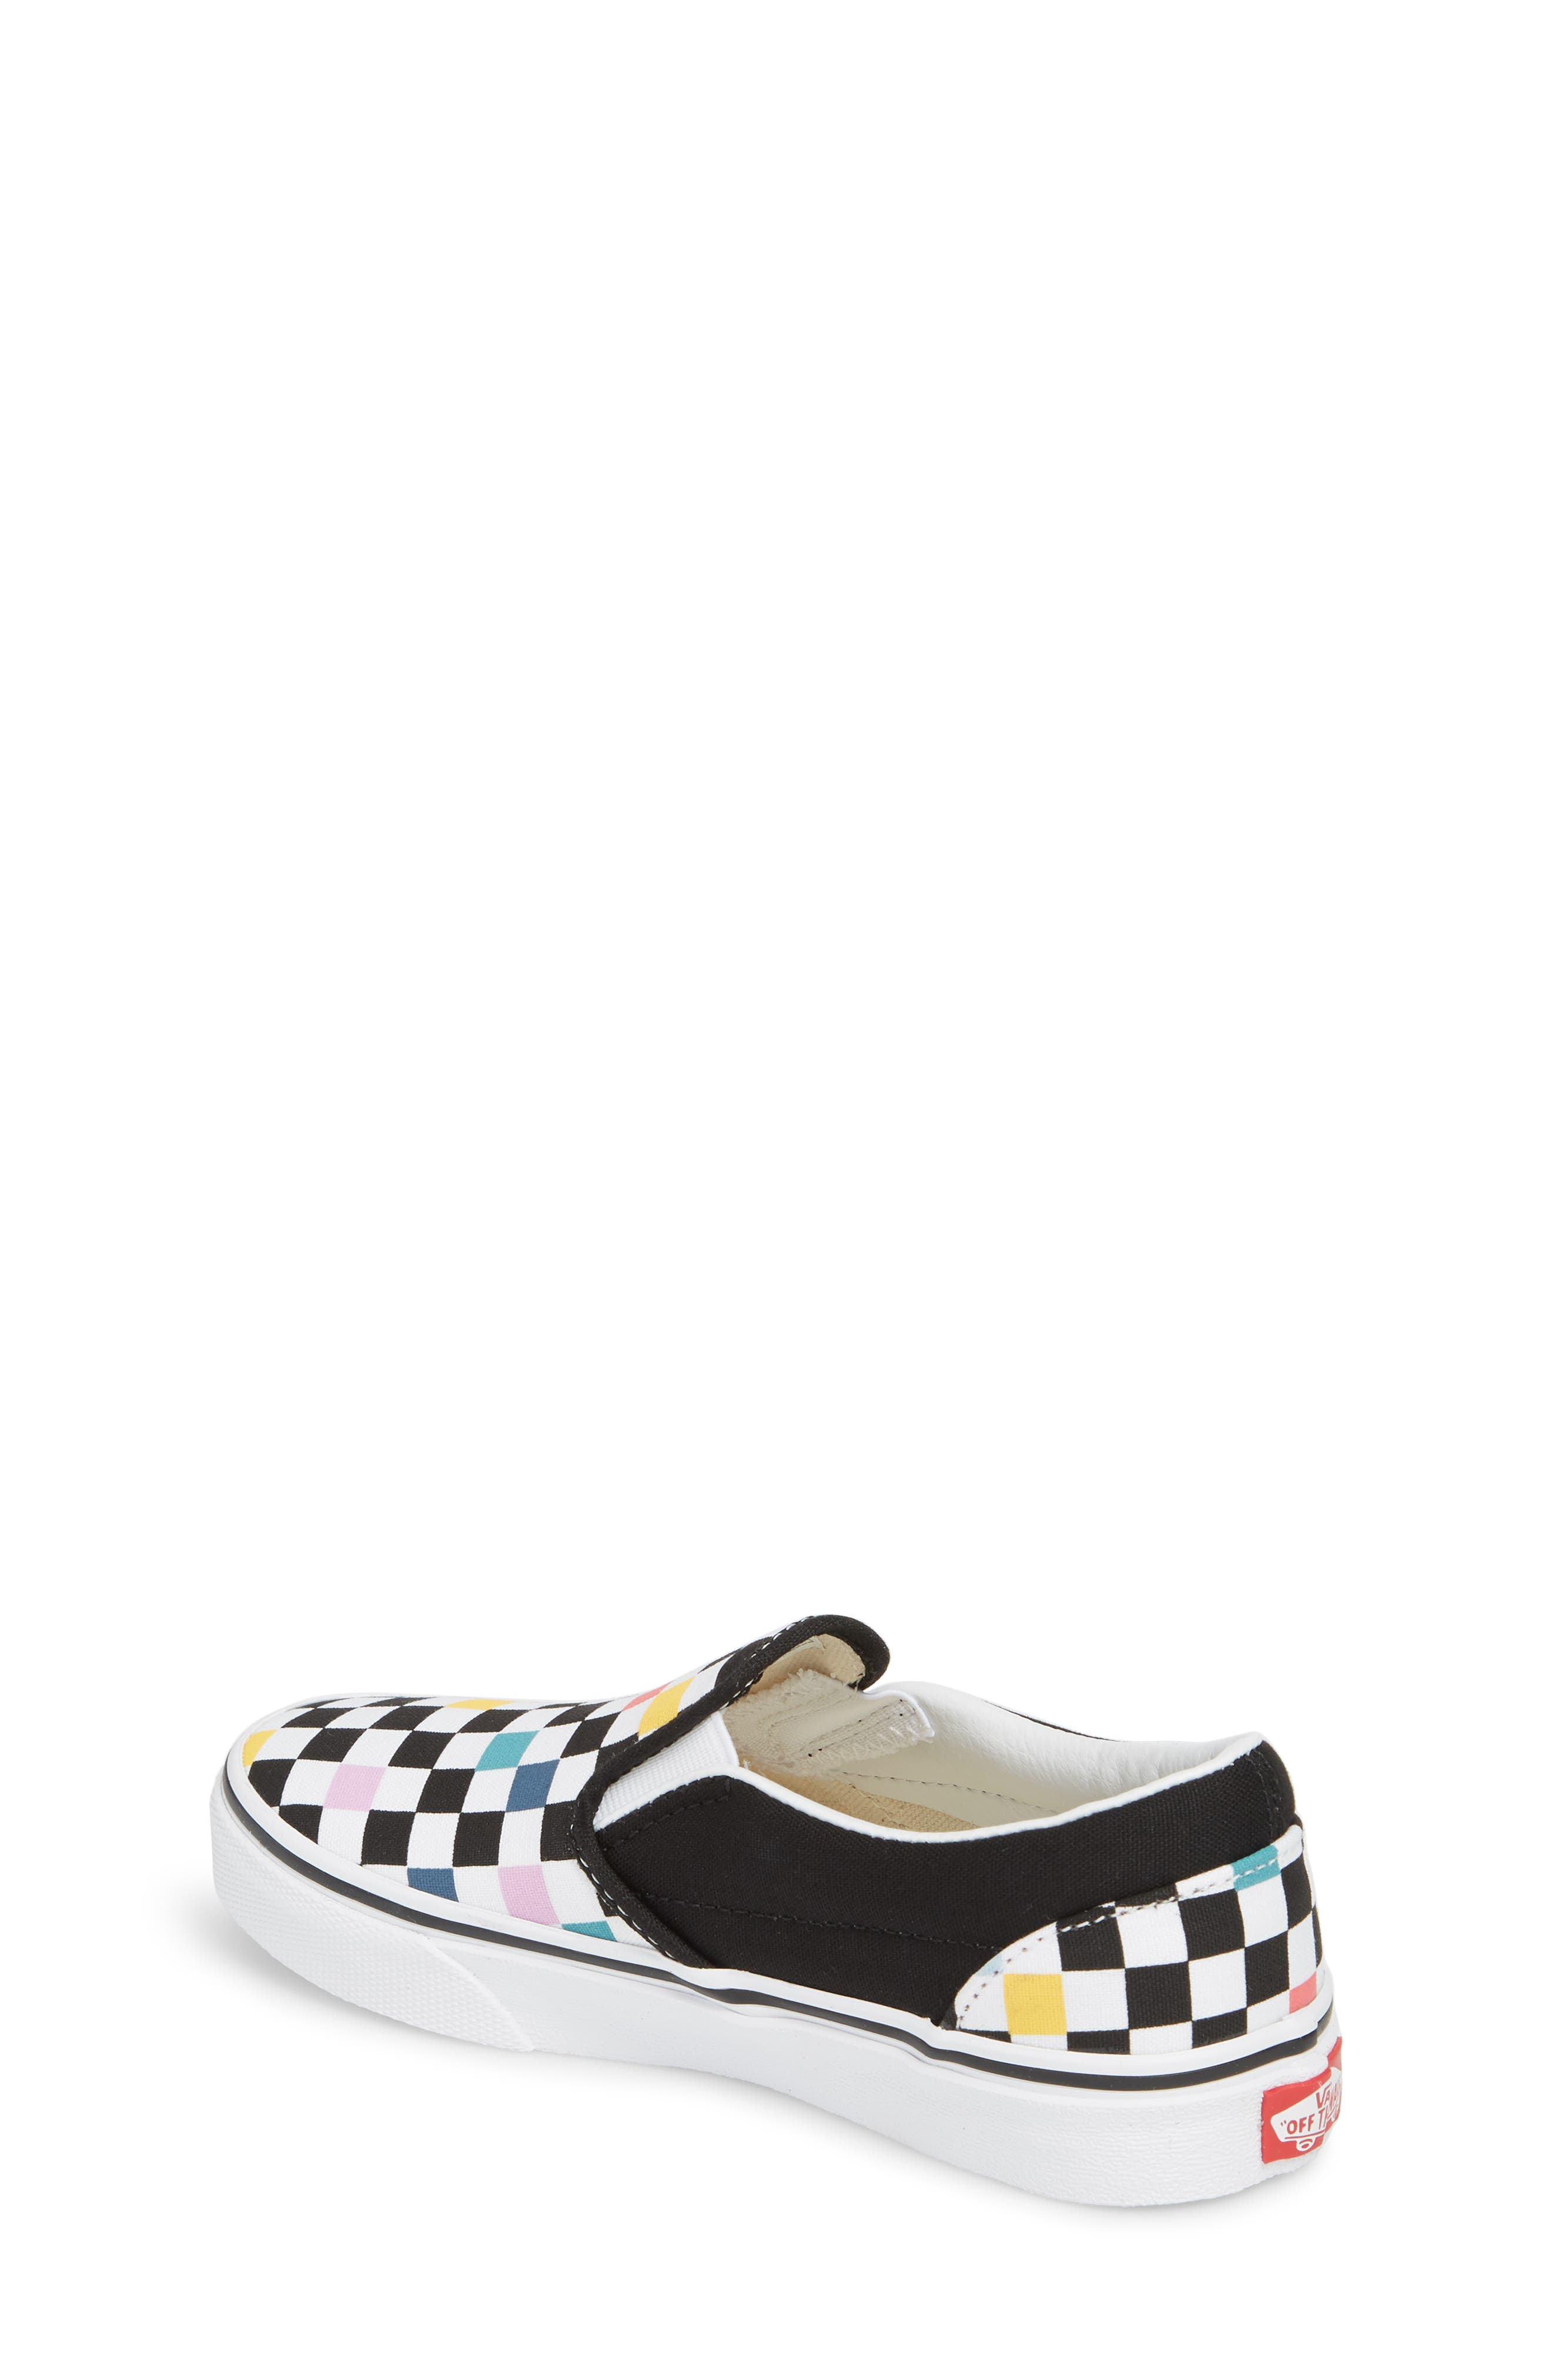 Party Check Slip-On Sneaker,                             Alternate thumbnail 2, color,                             Party Checker Multi/ Black